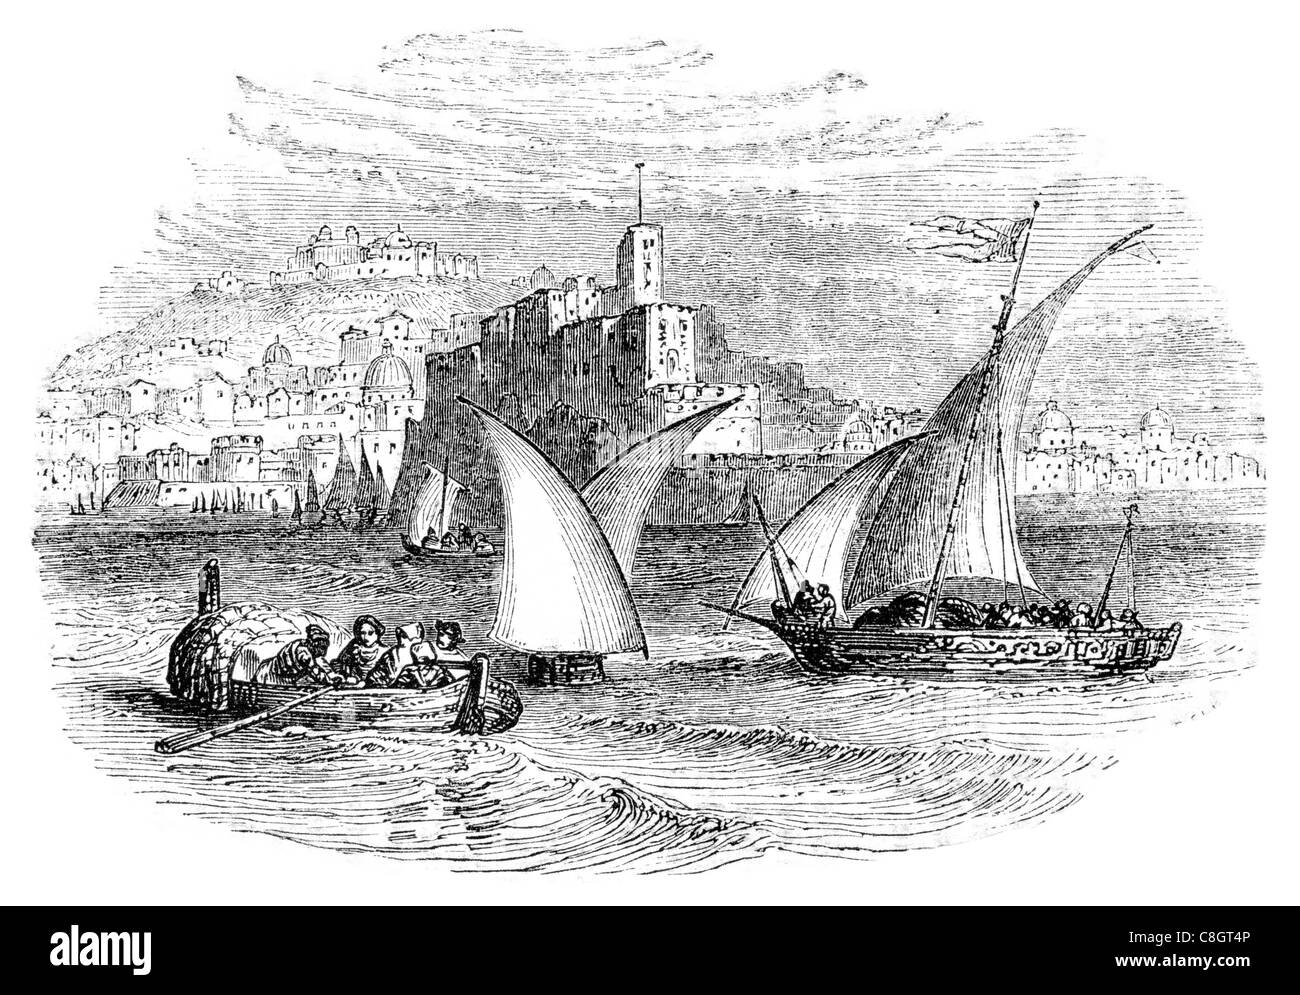 Neapolitan boats Naples fishing sailor fisherman  sail sailing sailor ship ships shipping marine vessel cargo goods - Stock Image